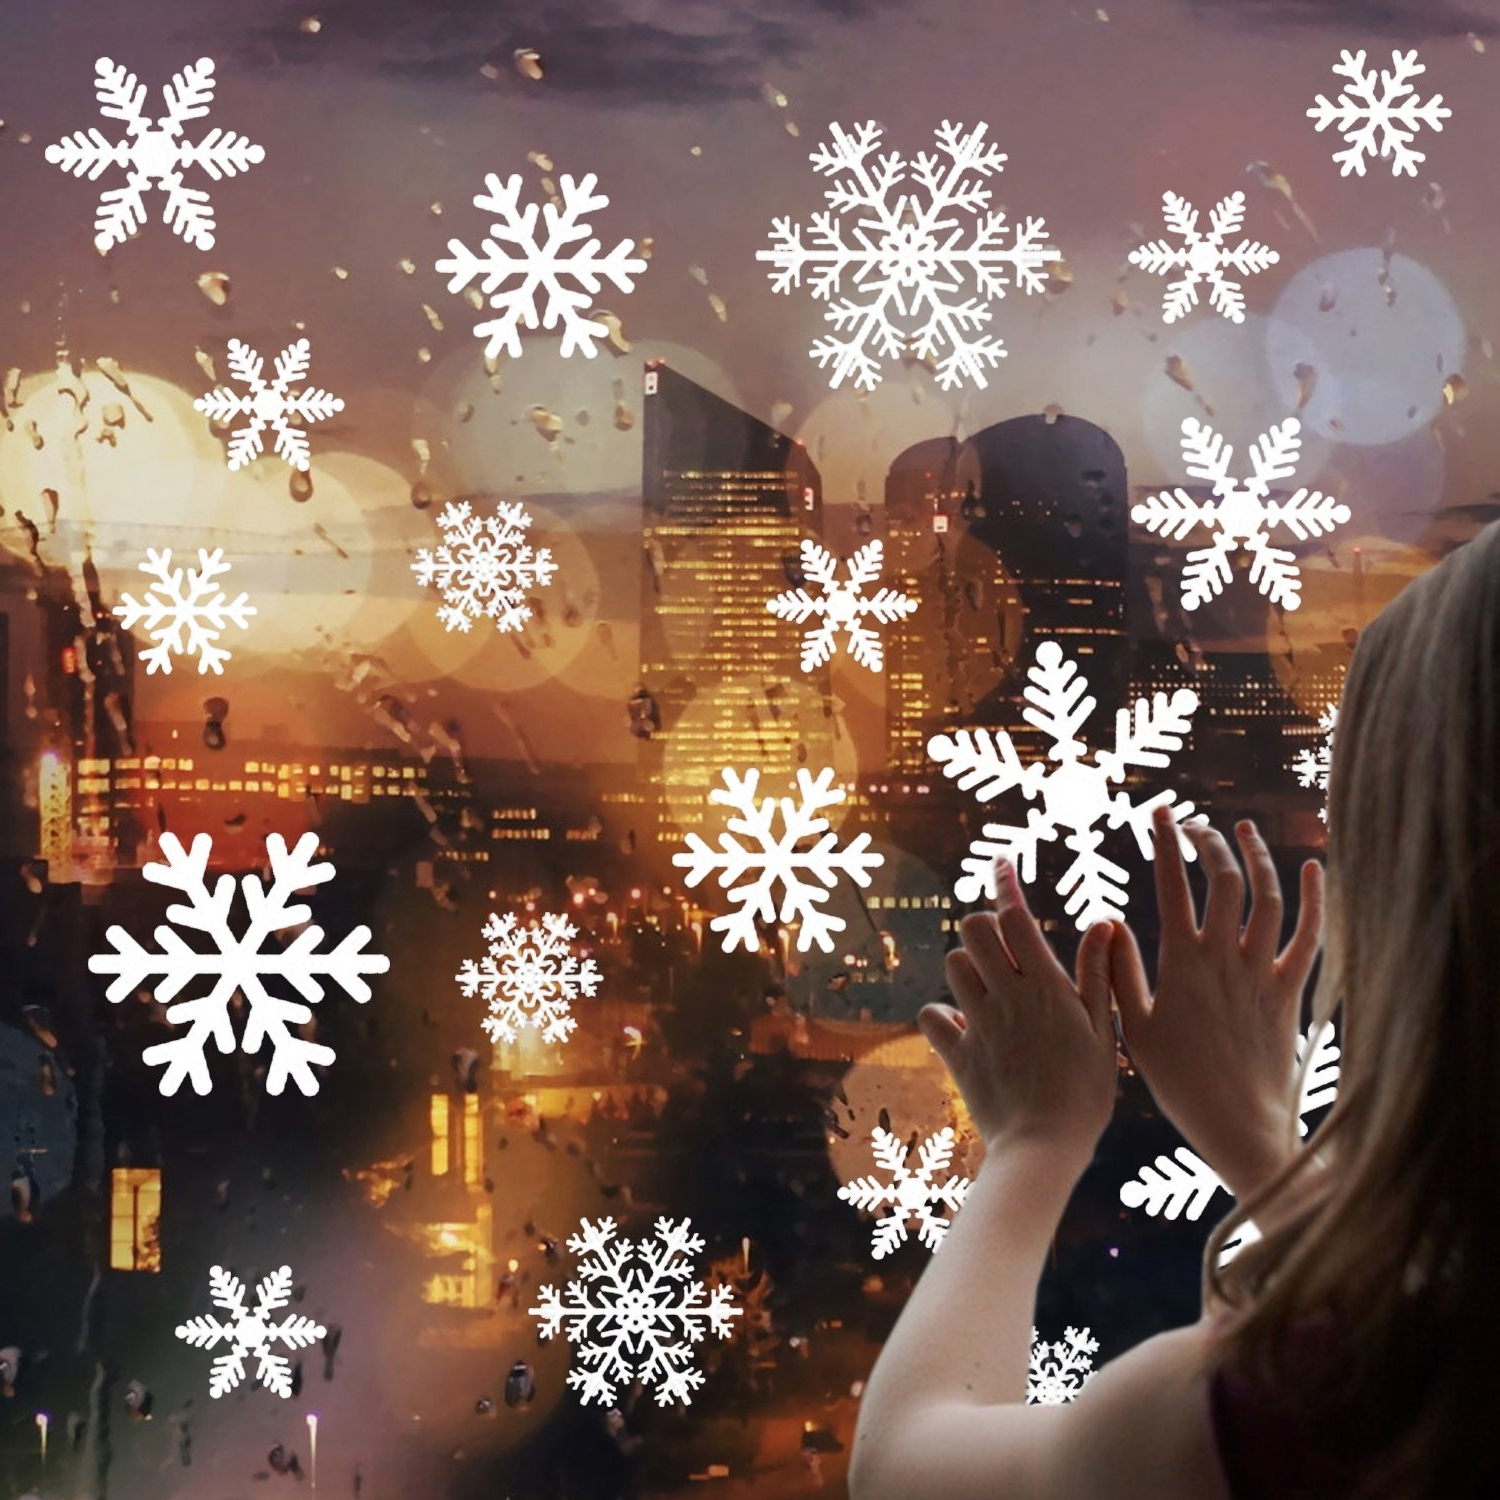 Christmas Snowflake Window Stickers Clings Decorations White Christmas Window Decals For Kids Winter Decorations